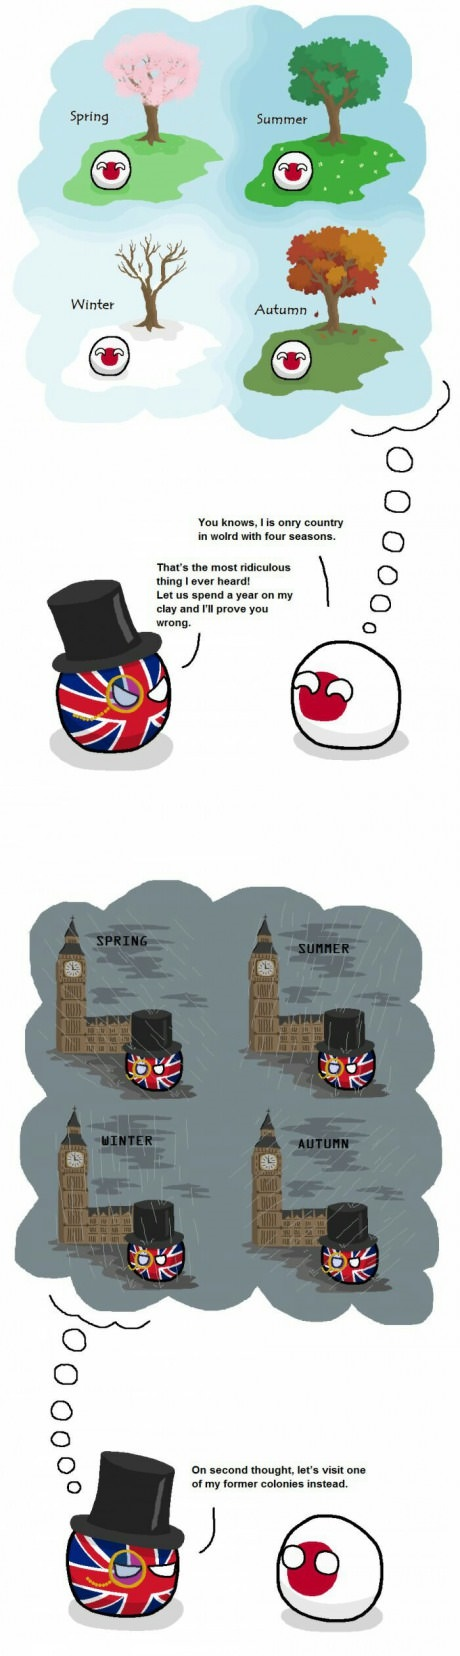 japan-britain-country-ball-comics